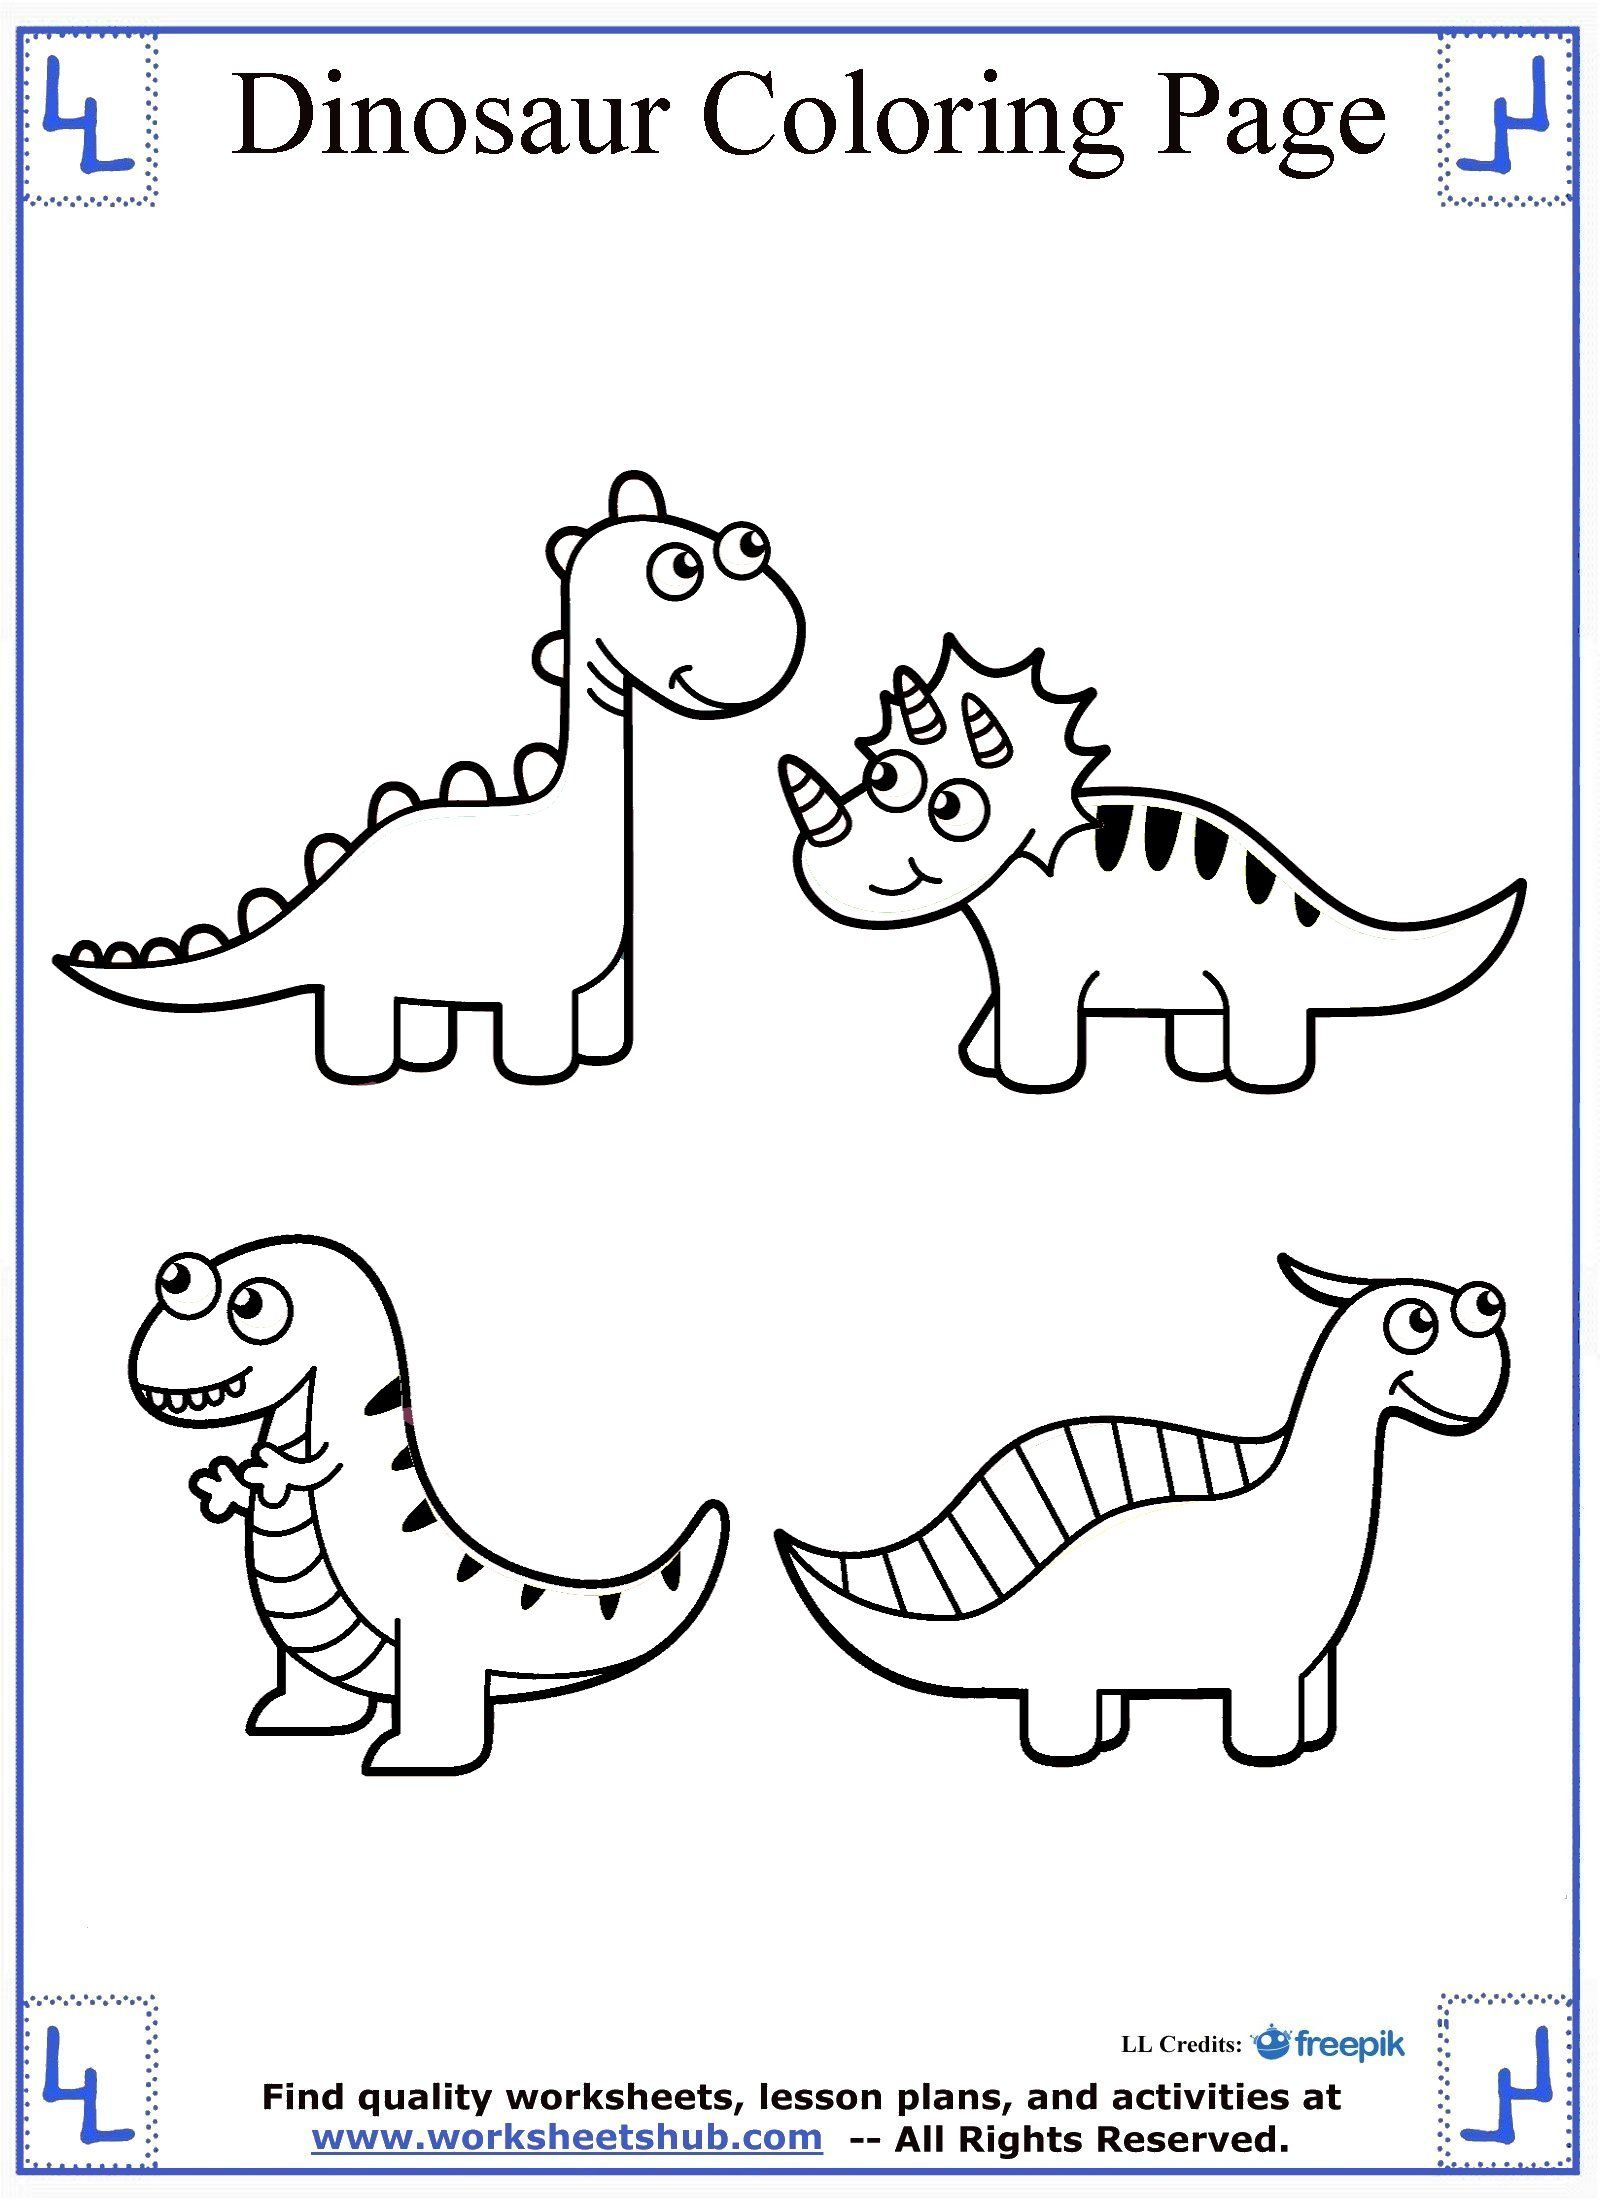 Dinosaur Coloring Page Cute Dinosaur coloring, Train